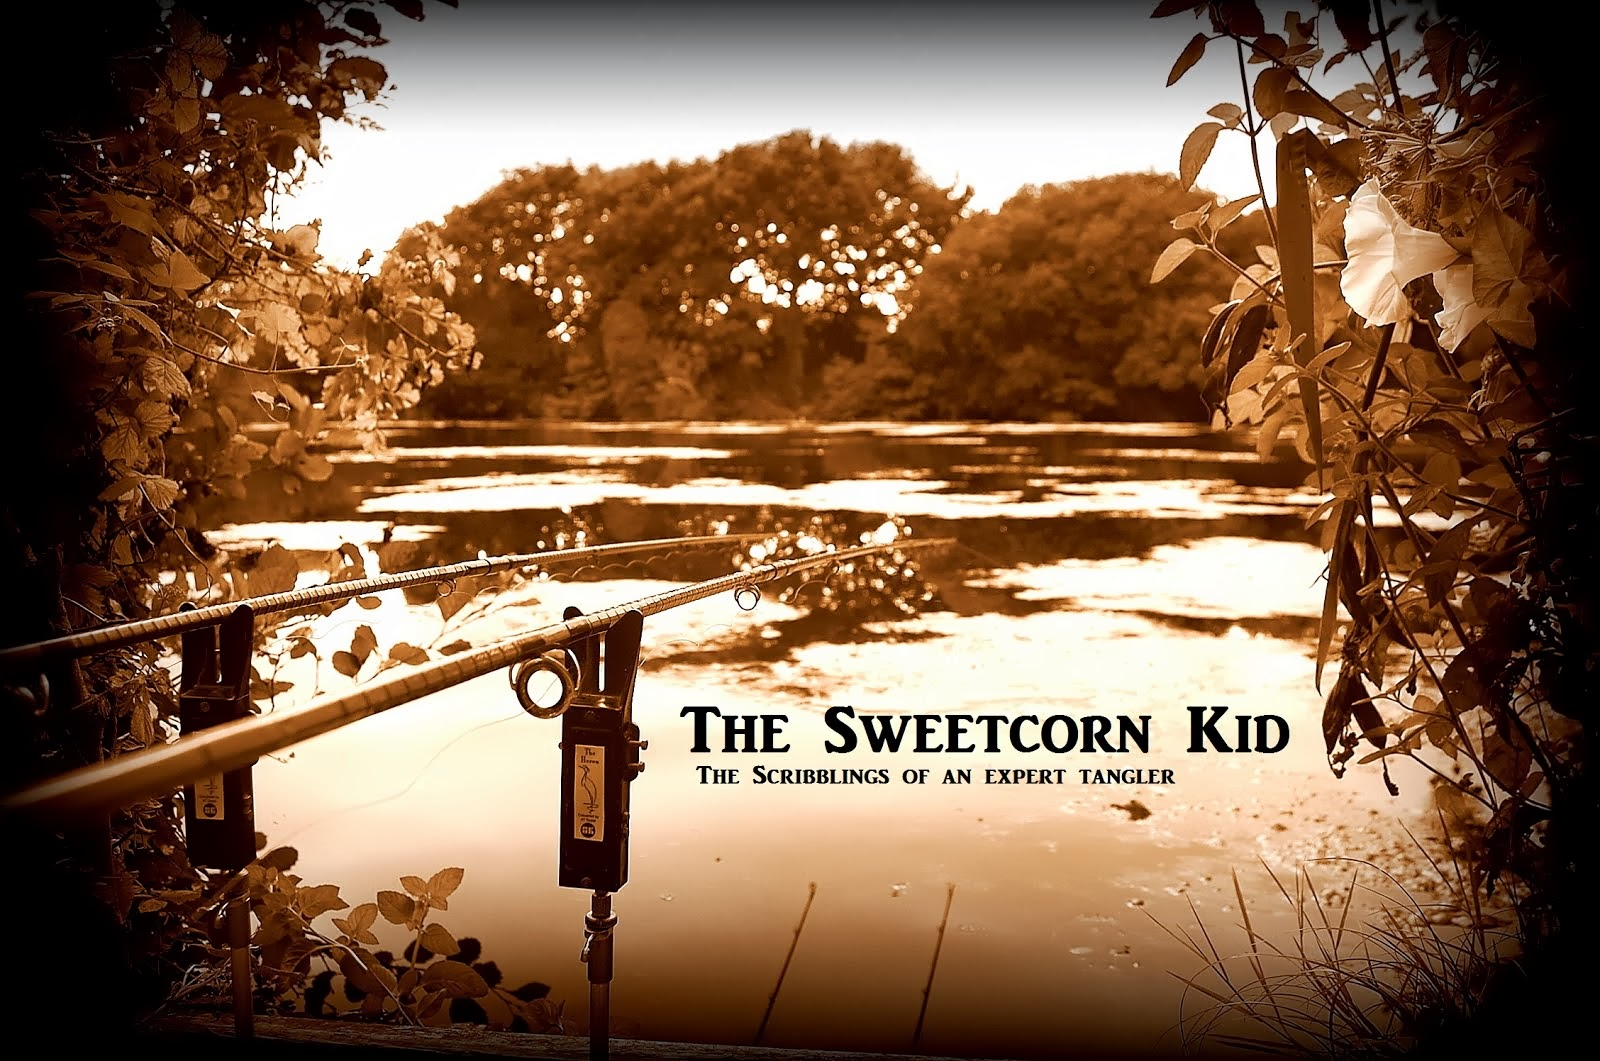 The Sweetcorn Kid